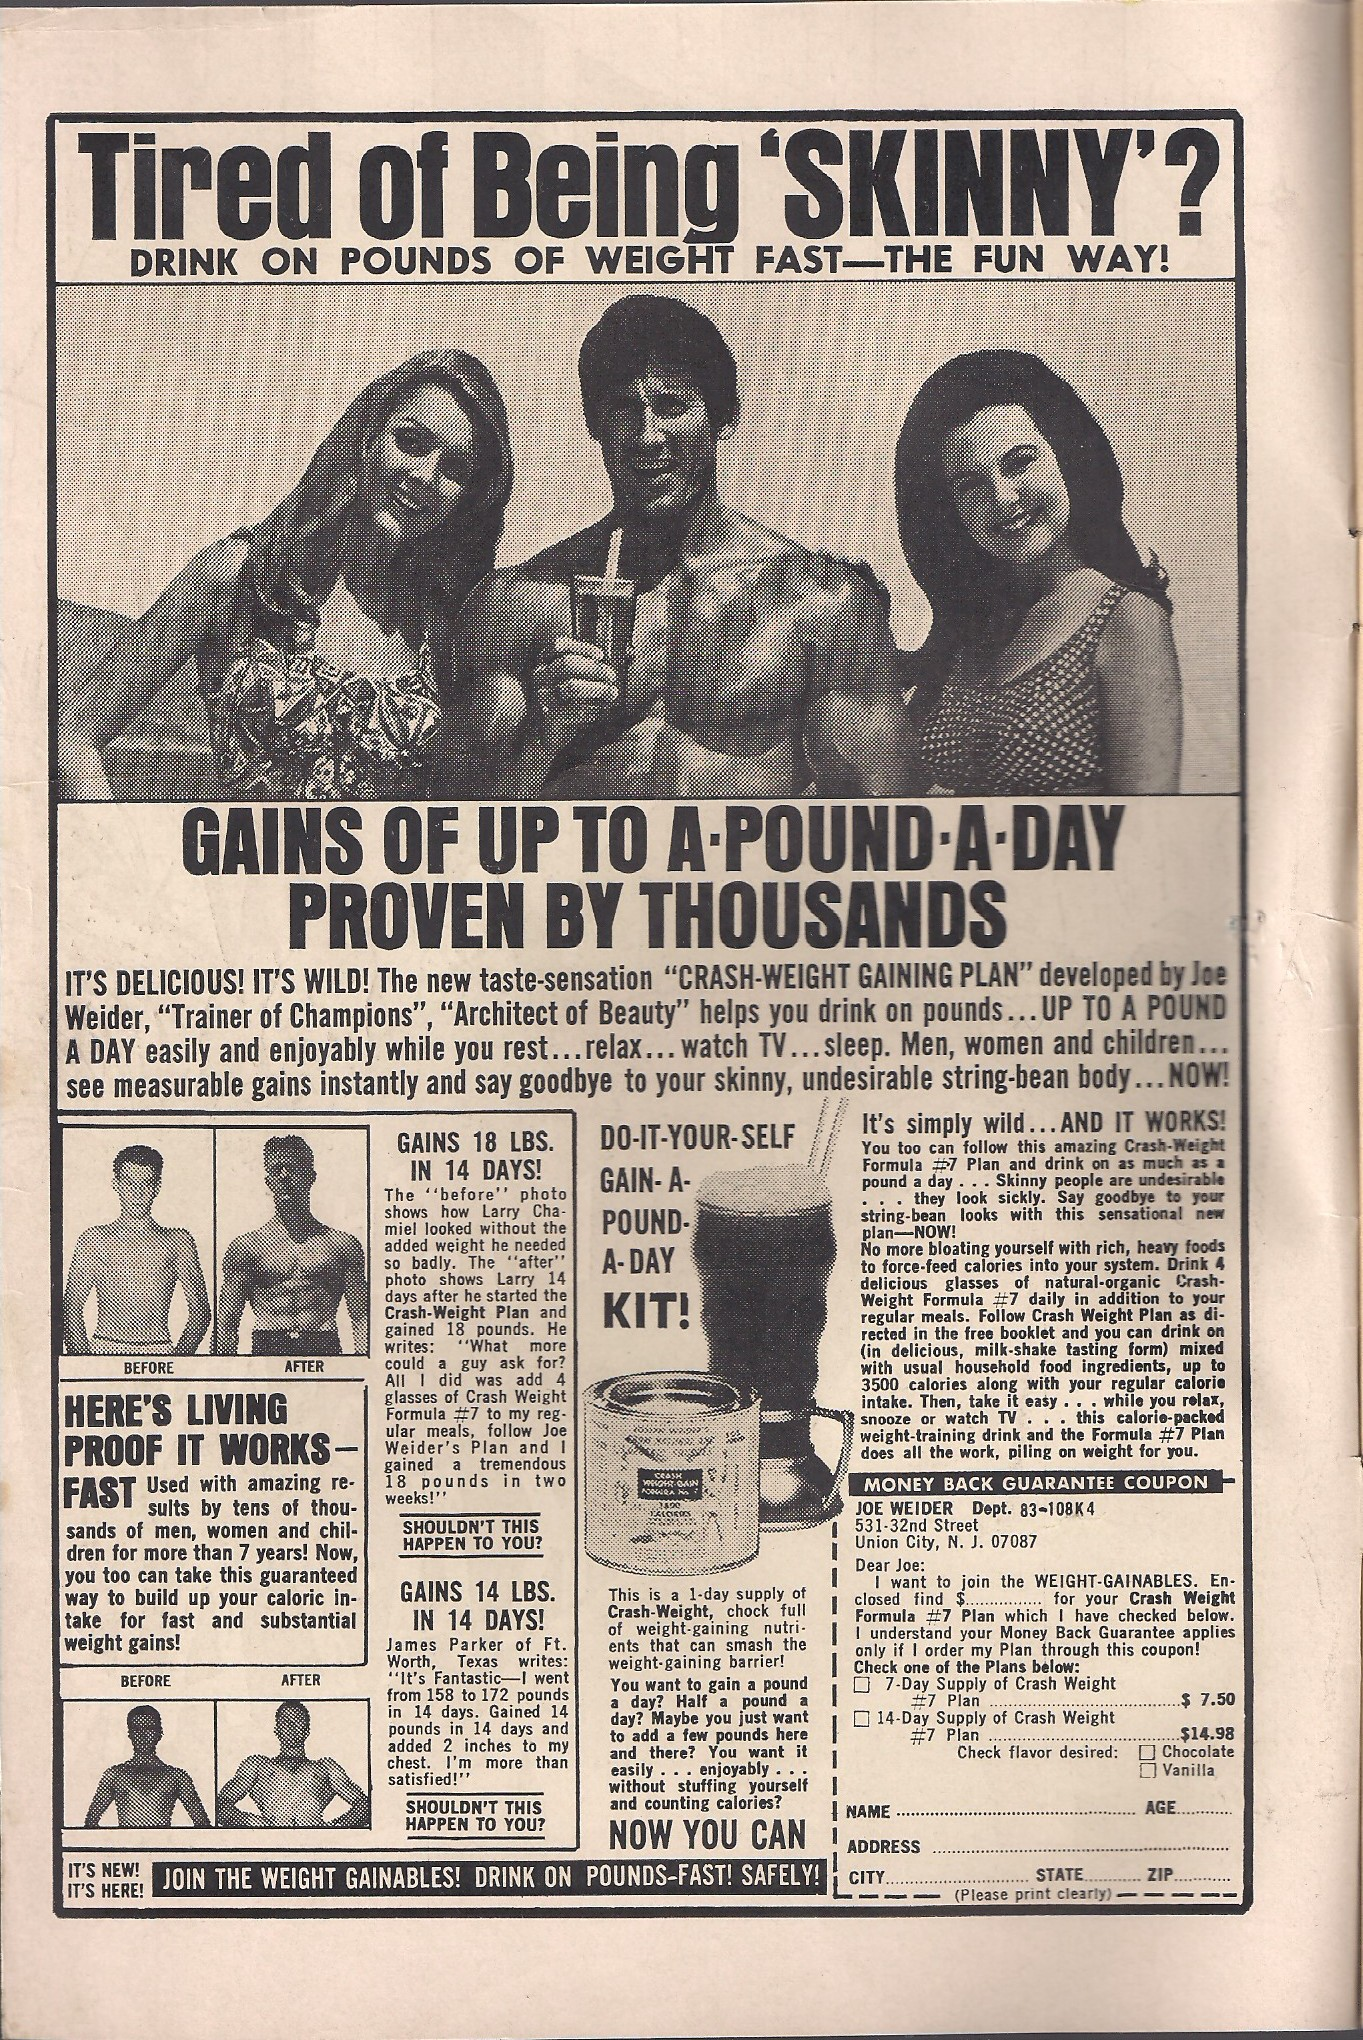 Ah, the '60's, where people were tired of being skinny.